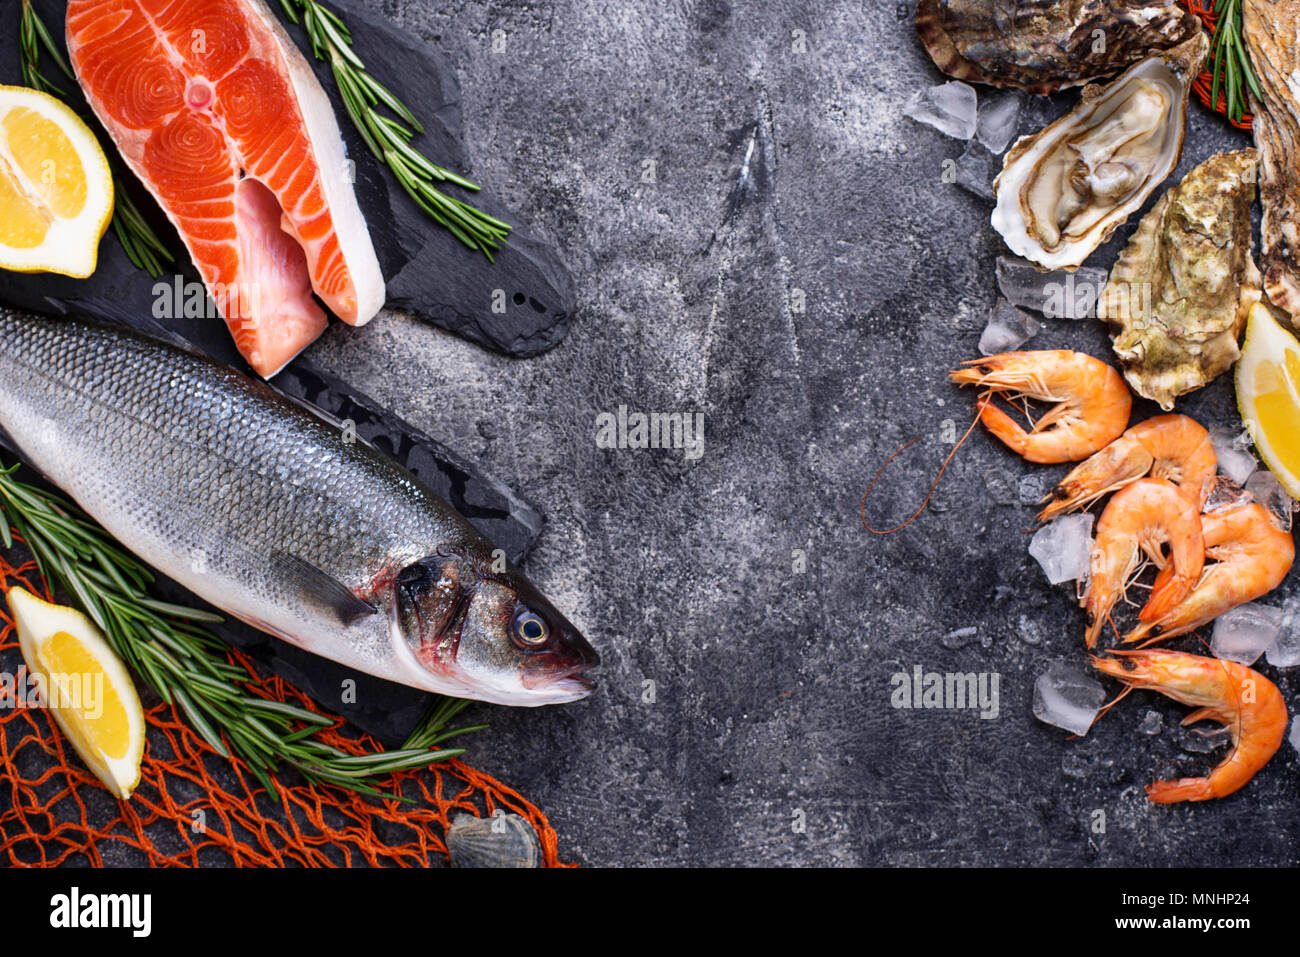 Seafood concept. Fish, shrimps and oysters. - Stock Image